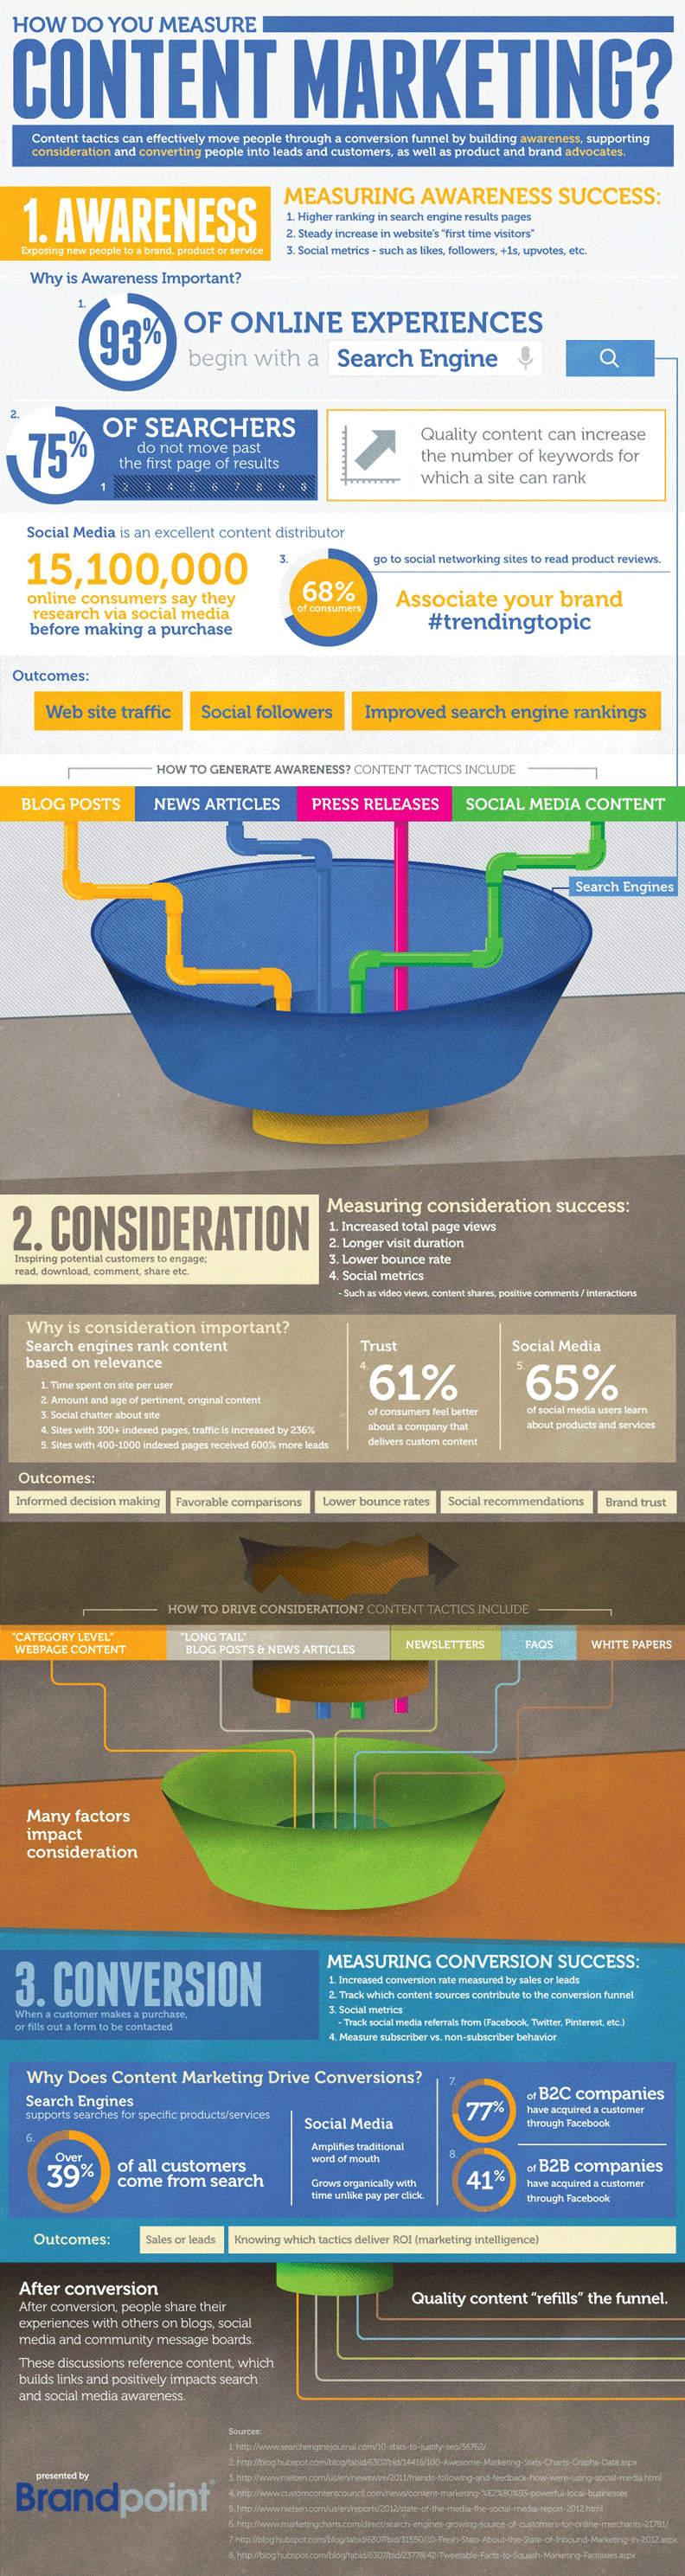 The Content Marketing Conversion Funnel [Infographic] image content marketing1